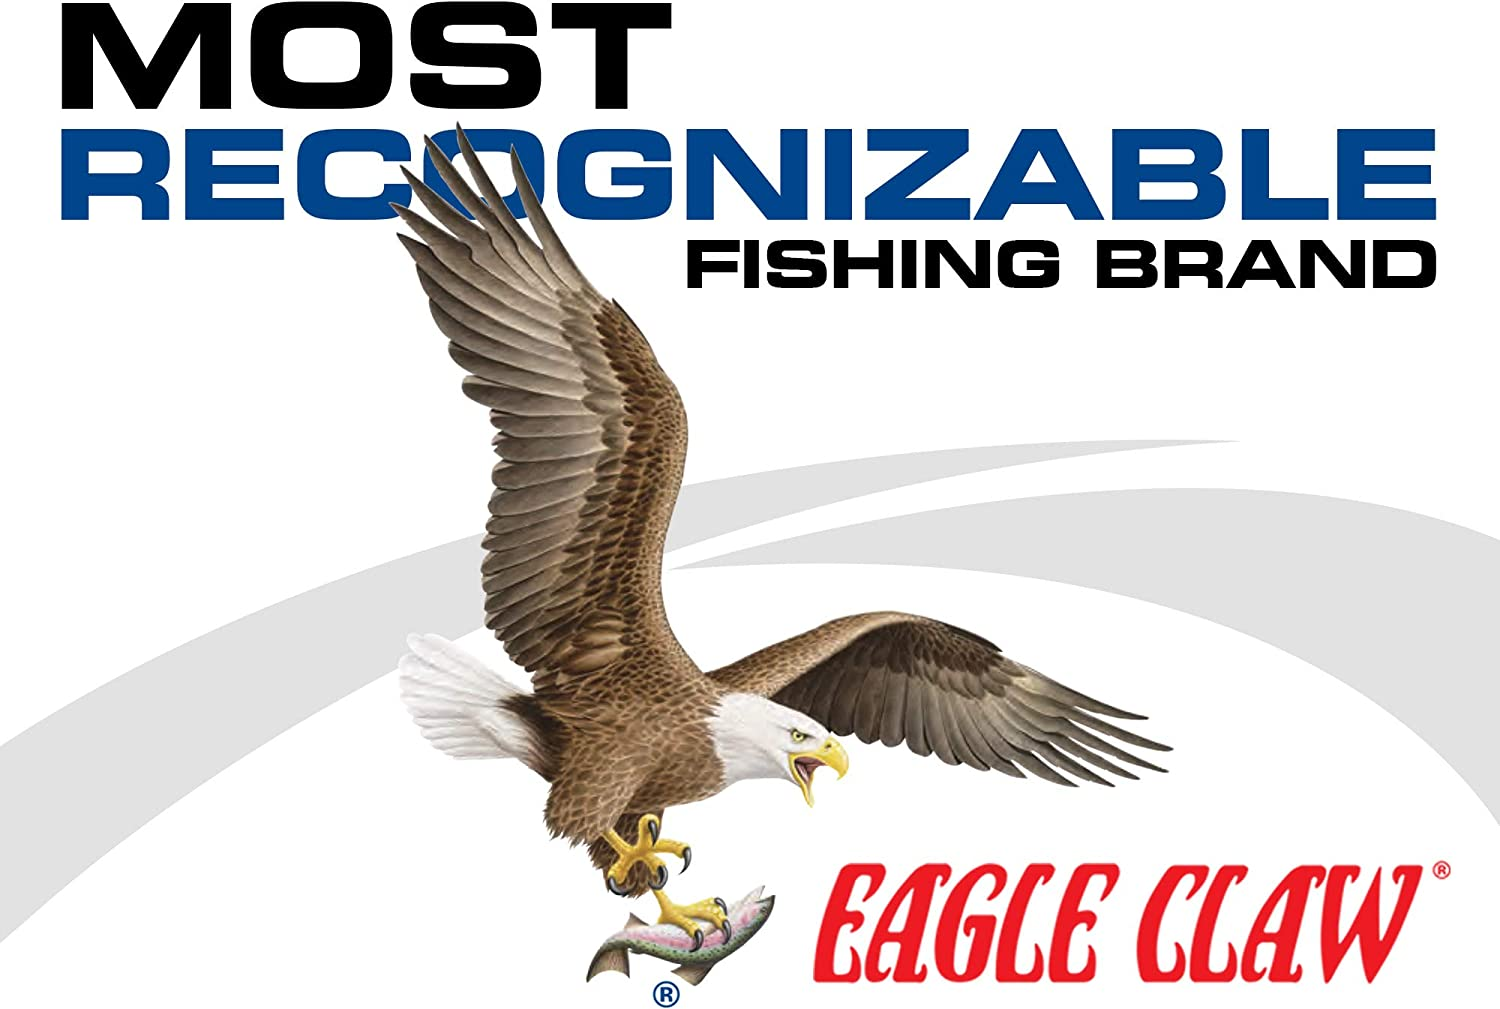 Eagle Claw Floating Fish Basket 19x30 799916752430 for sale online